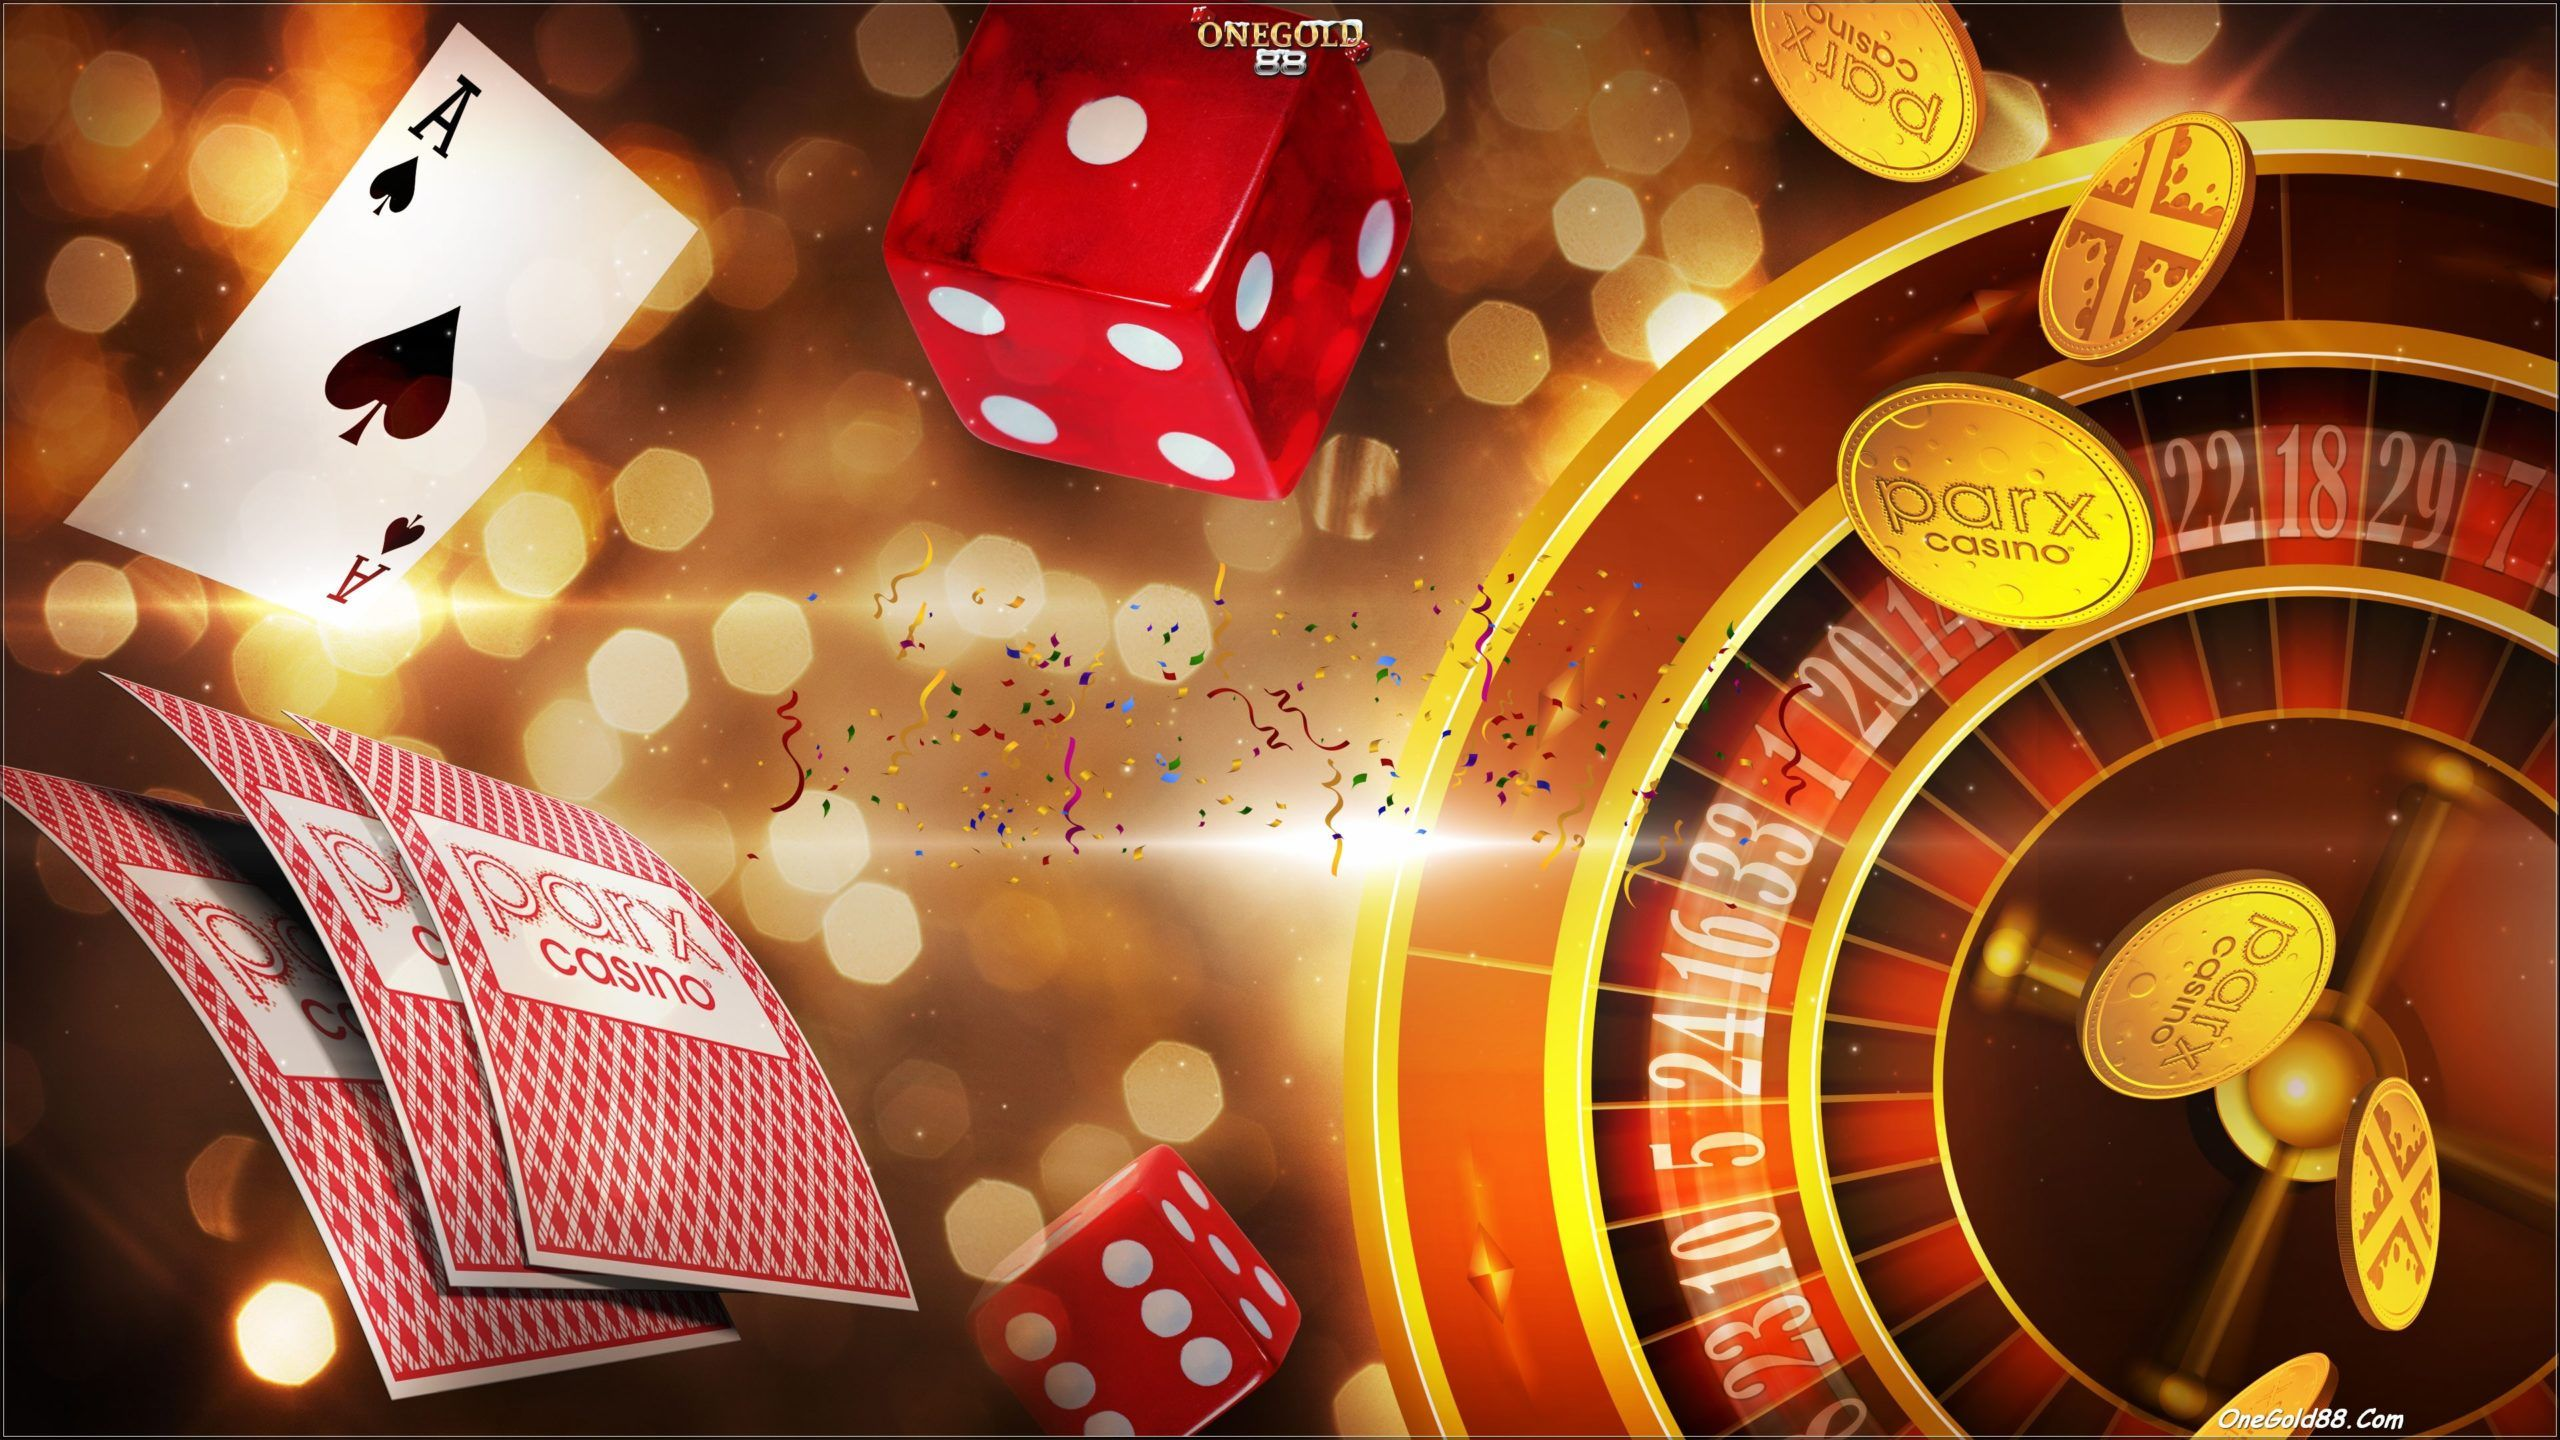 A secure mega888 gambling site is an optimal site for your bets post thumbnail image